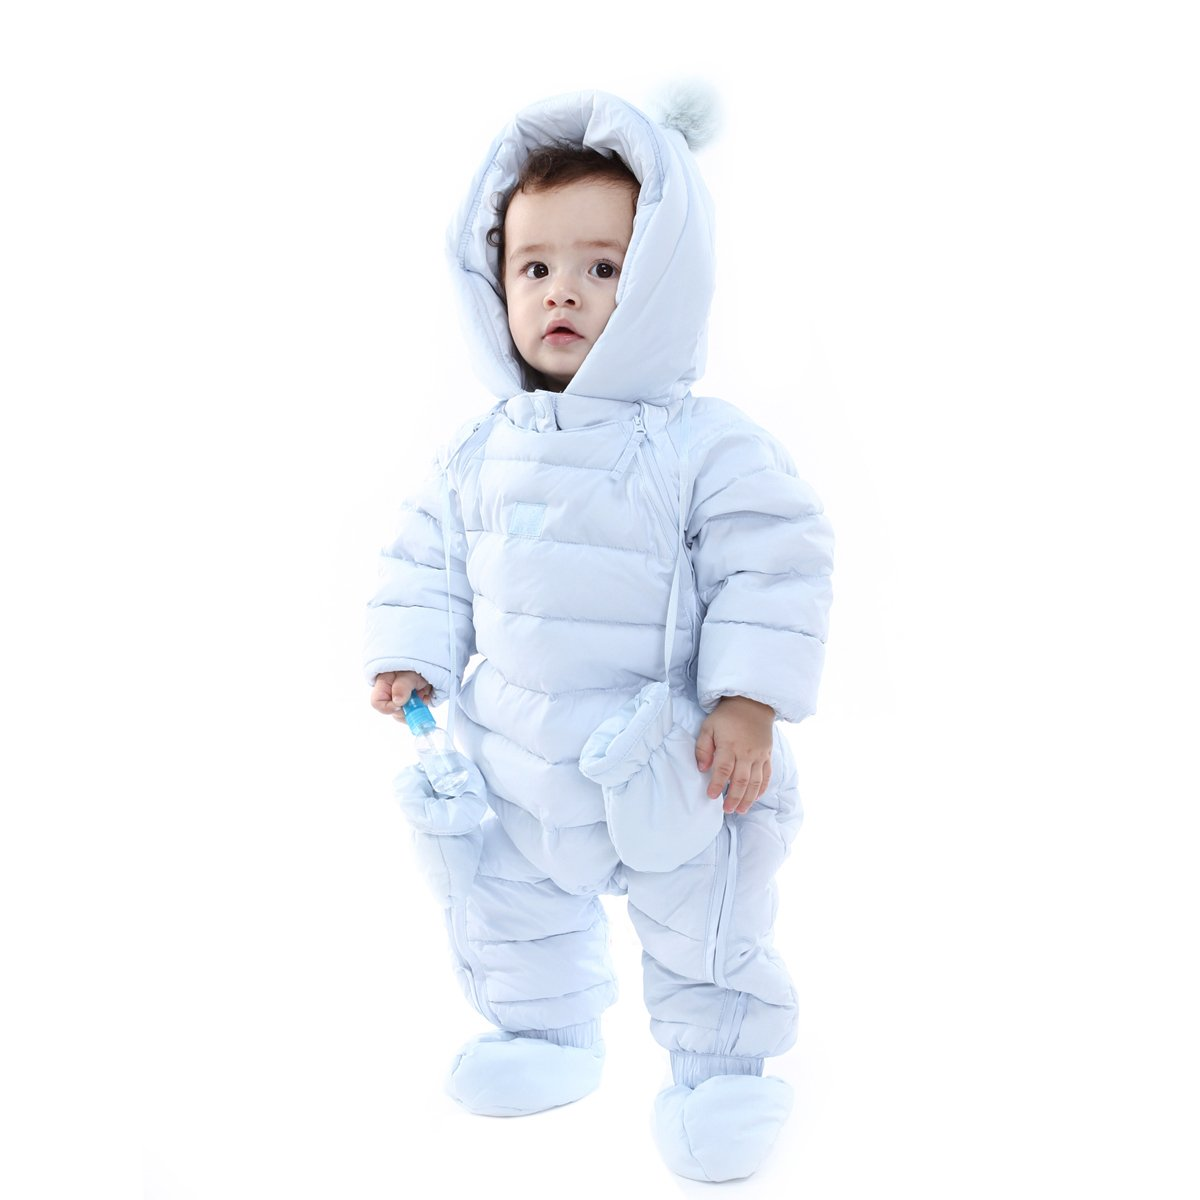 ad77282b0 Amazon.com: Bebone Newborn Baby Hooded Winter Puffer Snowsuit with Shoes  and Gloves: Clothing